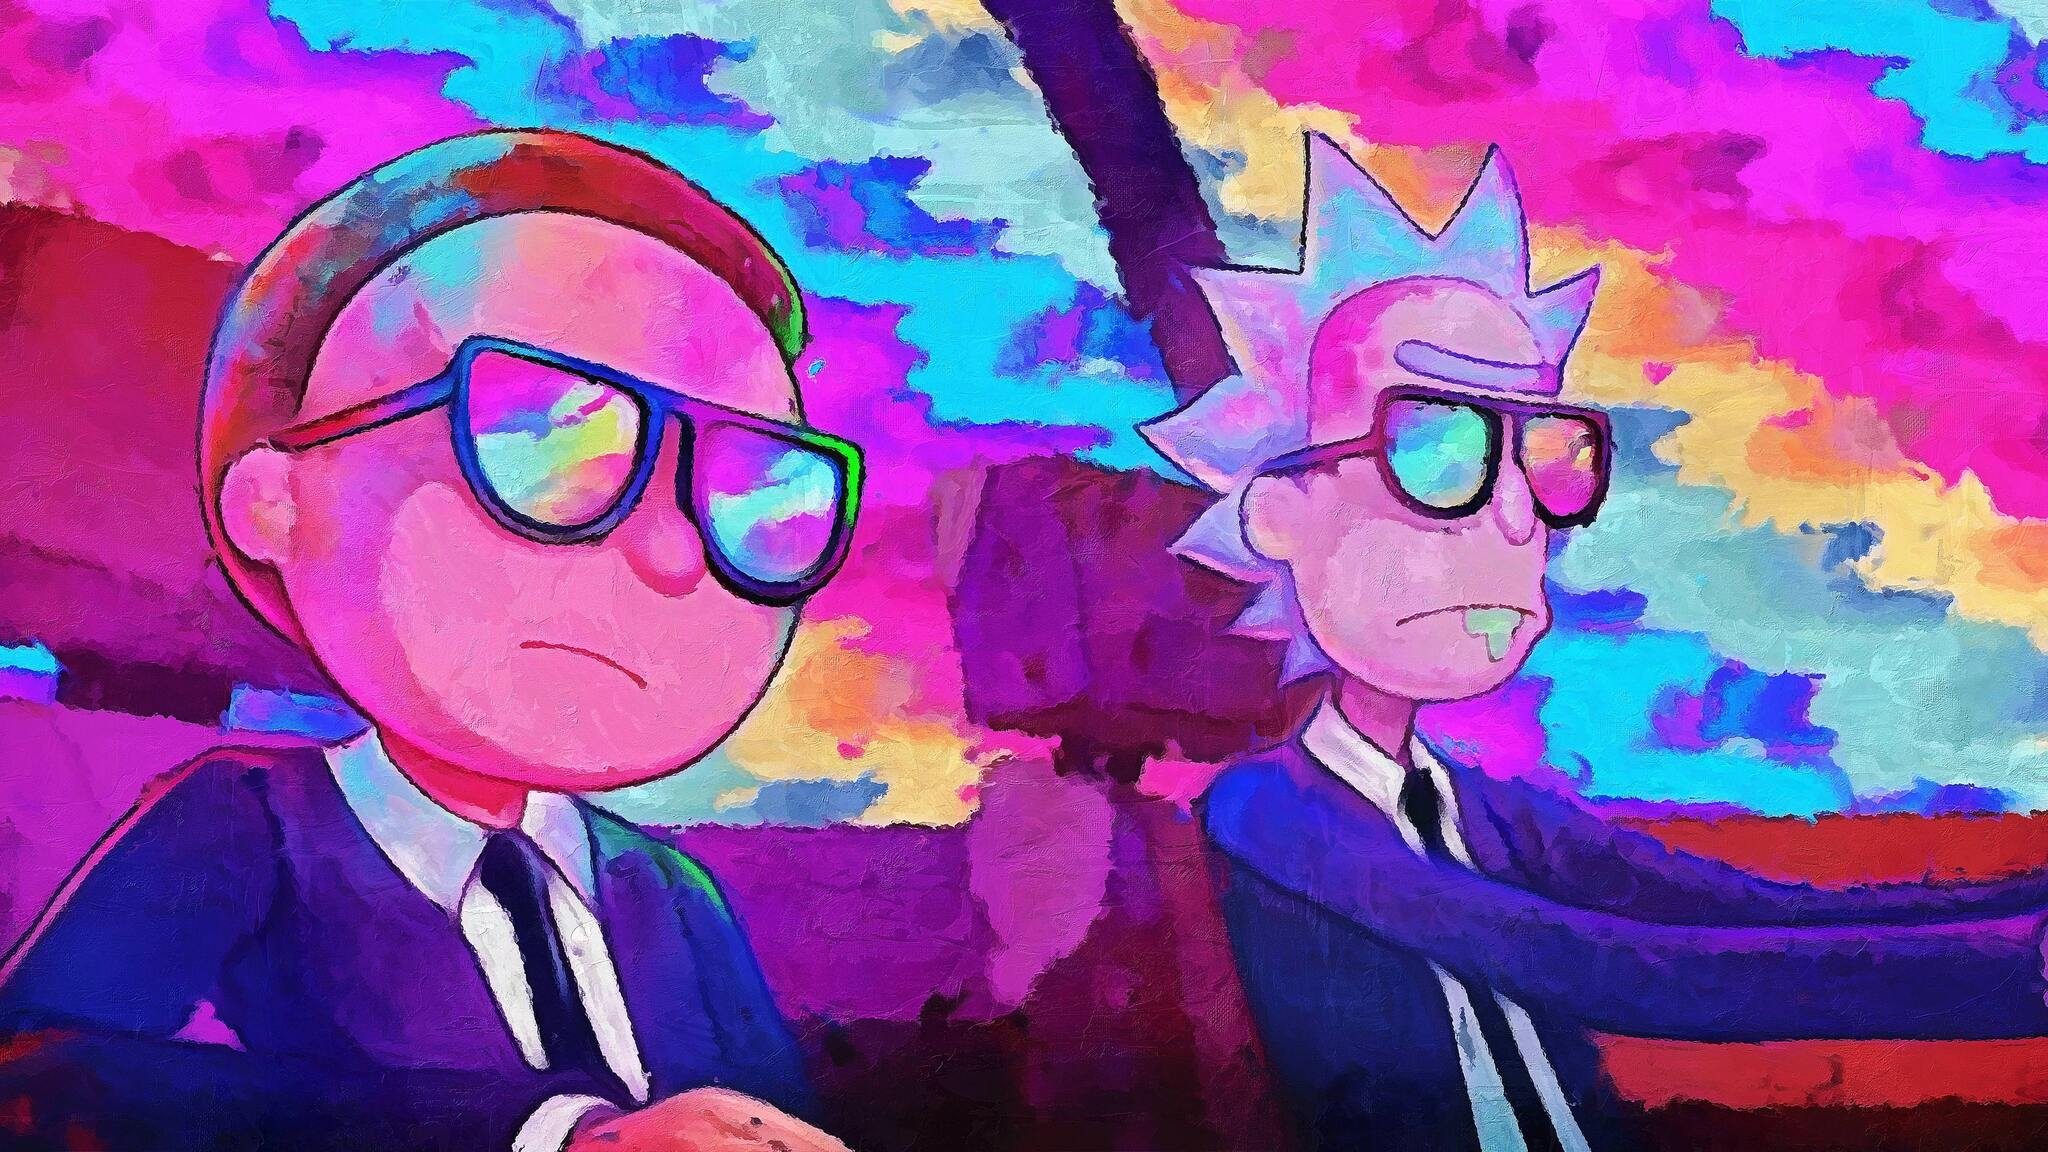 Android 3d Engine Live Wallpaper 2048x1152 Rick And Morty 5k Artwork 2048x1152 Resolution